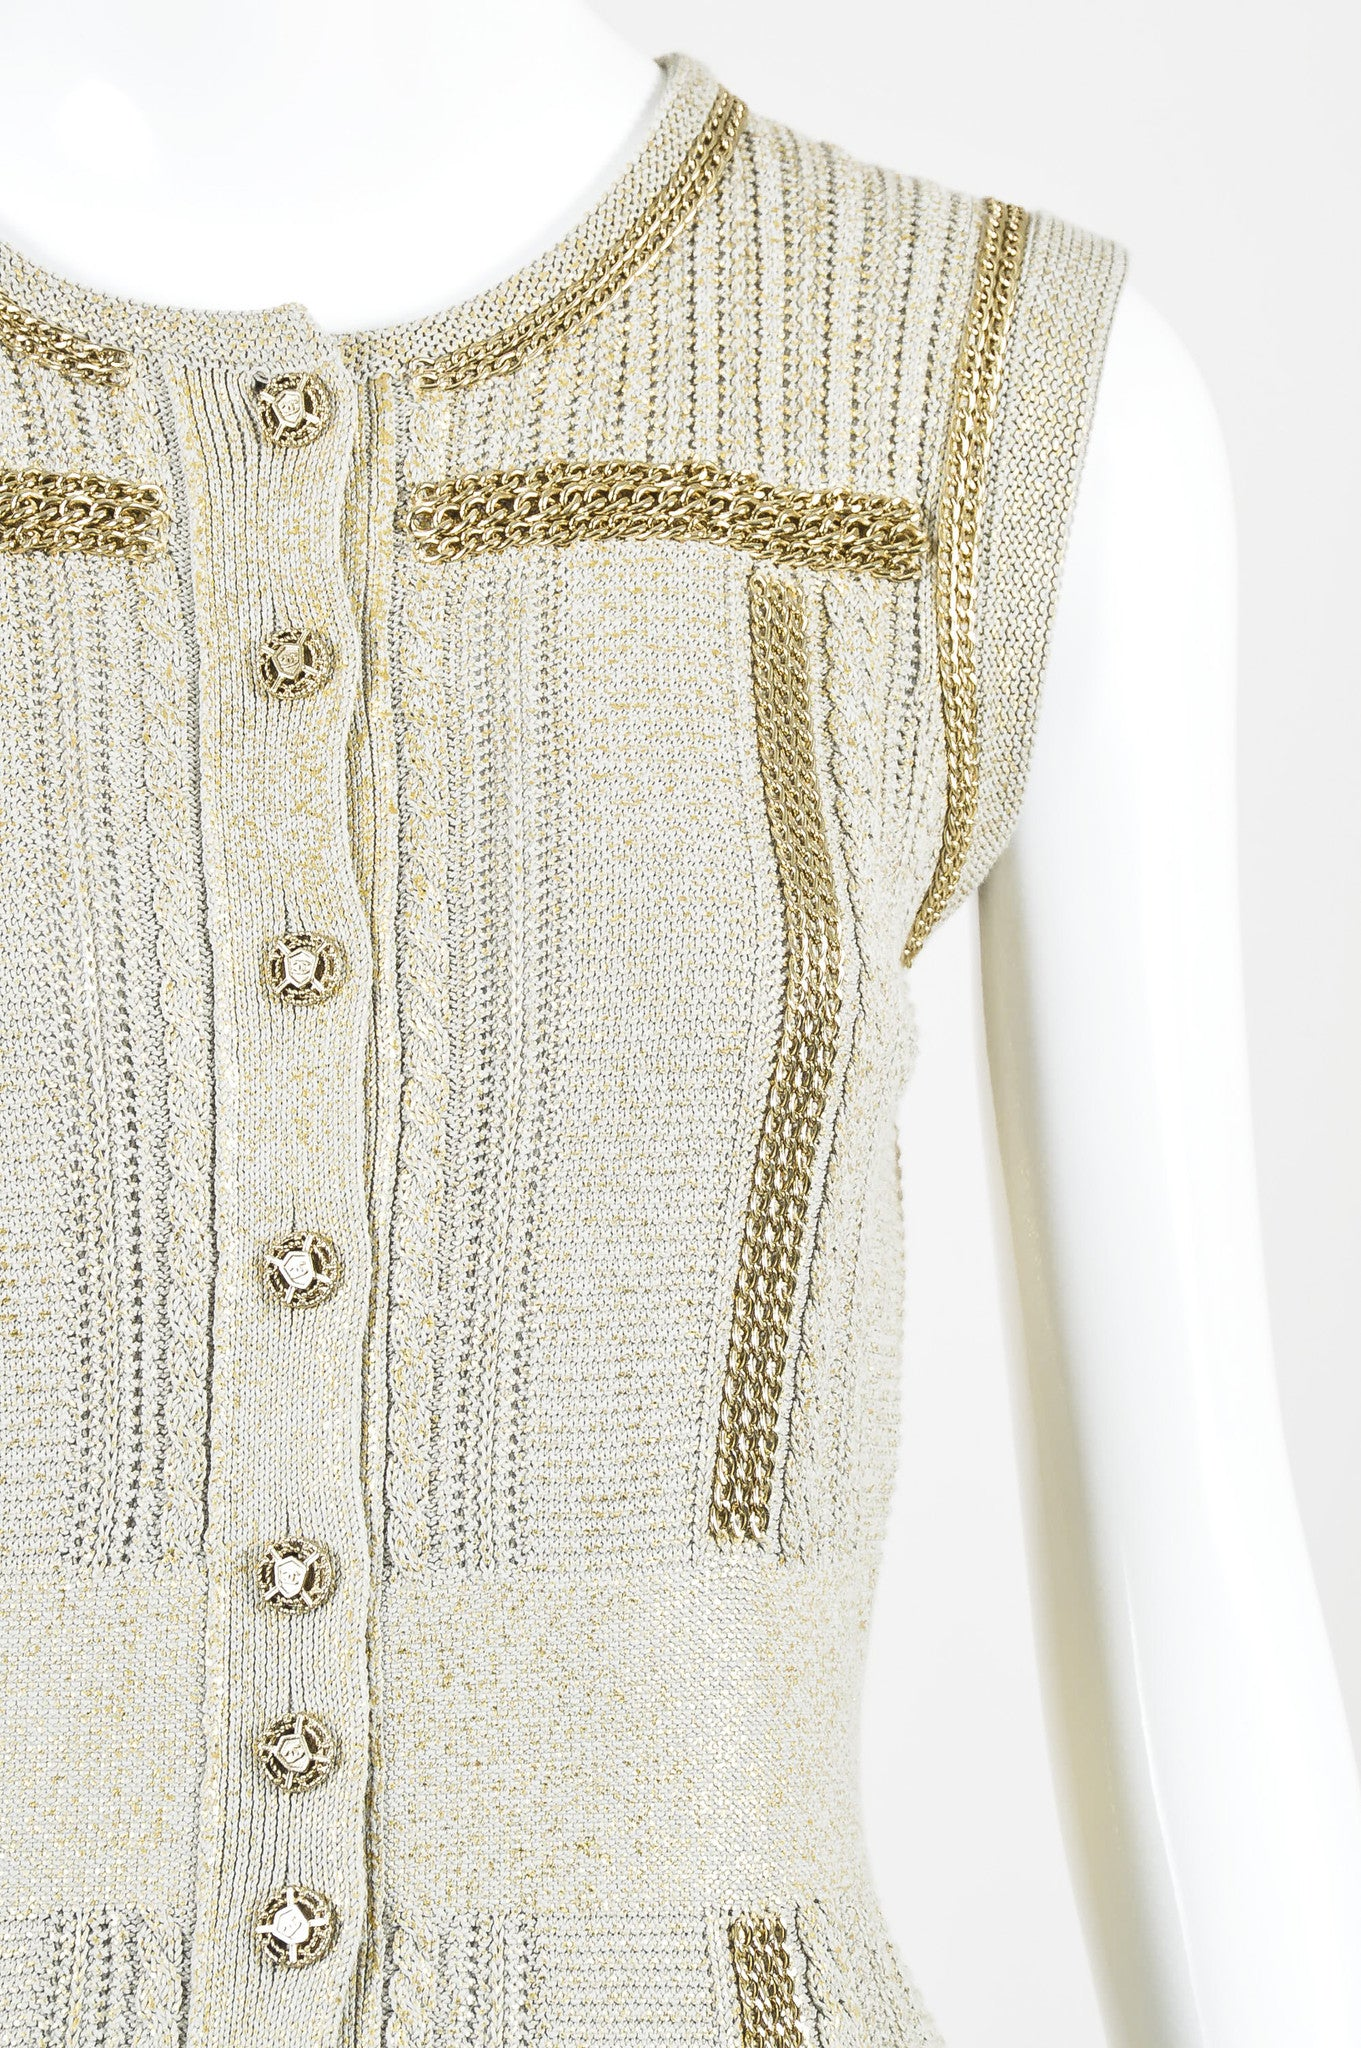 Chanel Taupe Metallic Gold Chain Trim 'CC' Shield Button Sleeveless Cardigan Vest Detail